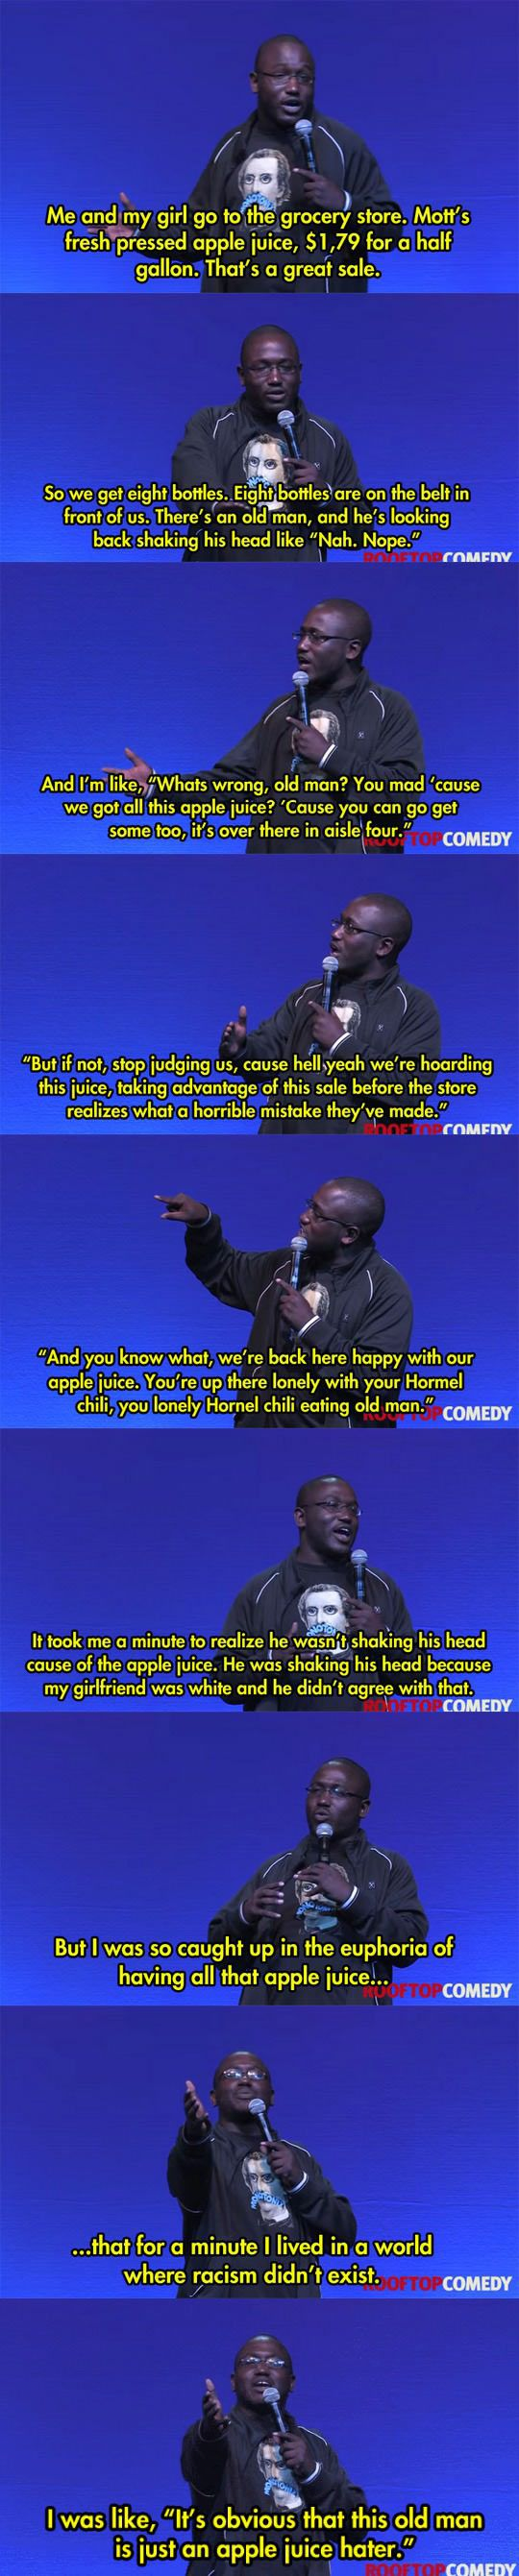 Why I adore Hannibal Buress' stand-up comedy. lol Apple juice euphoria.